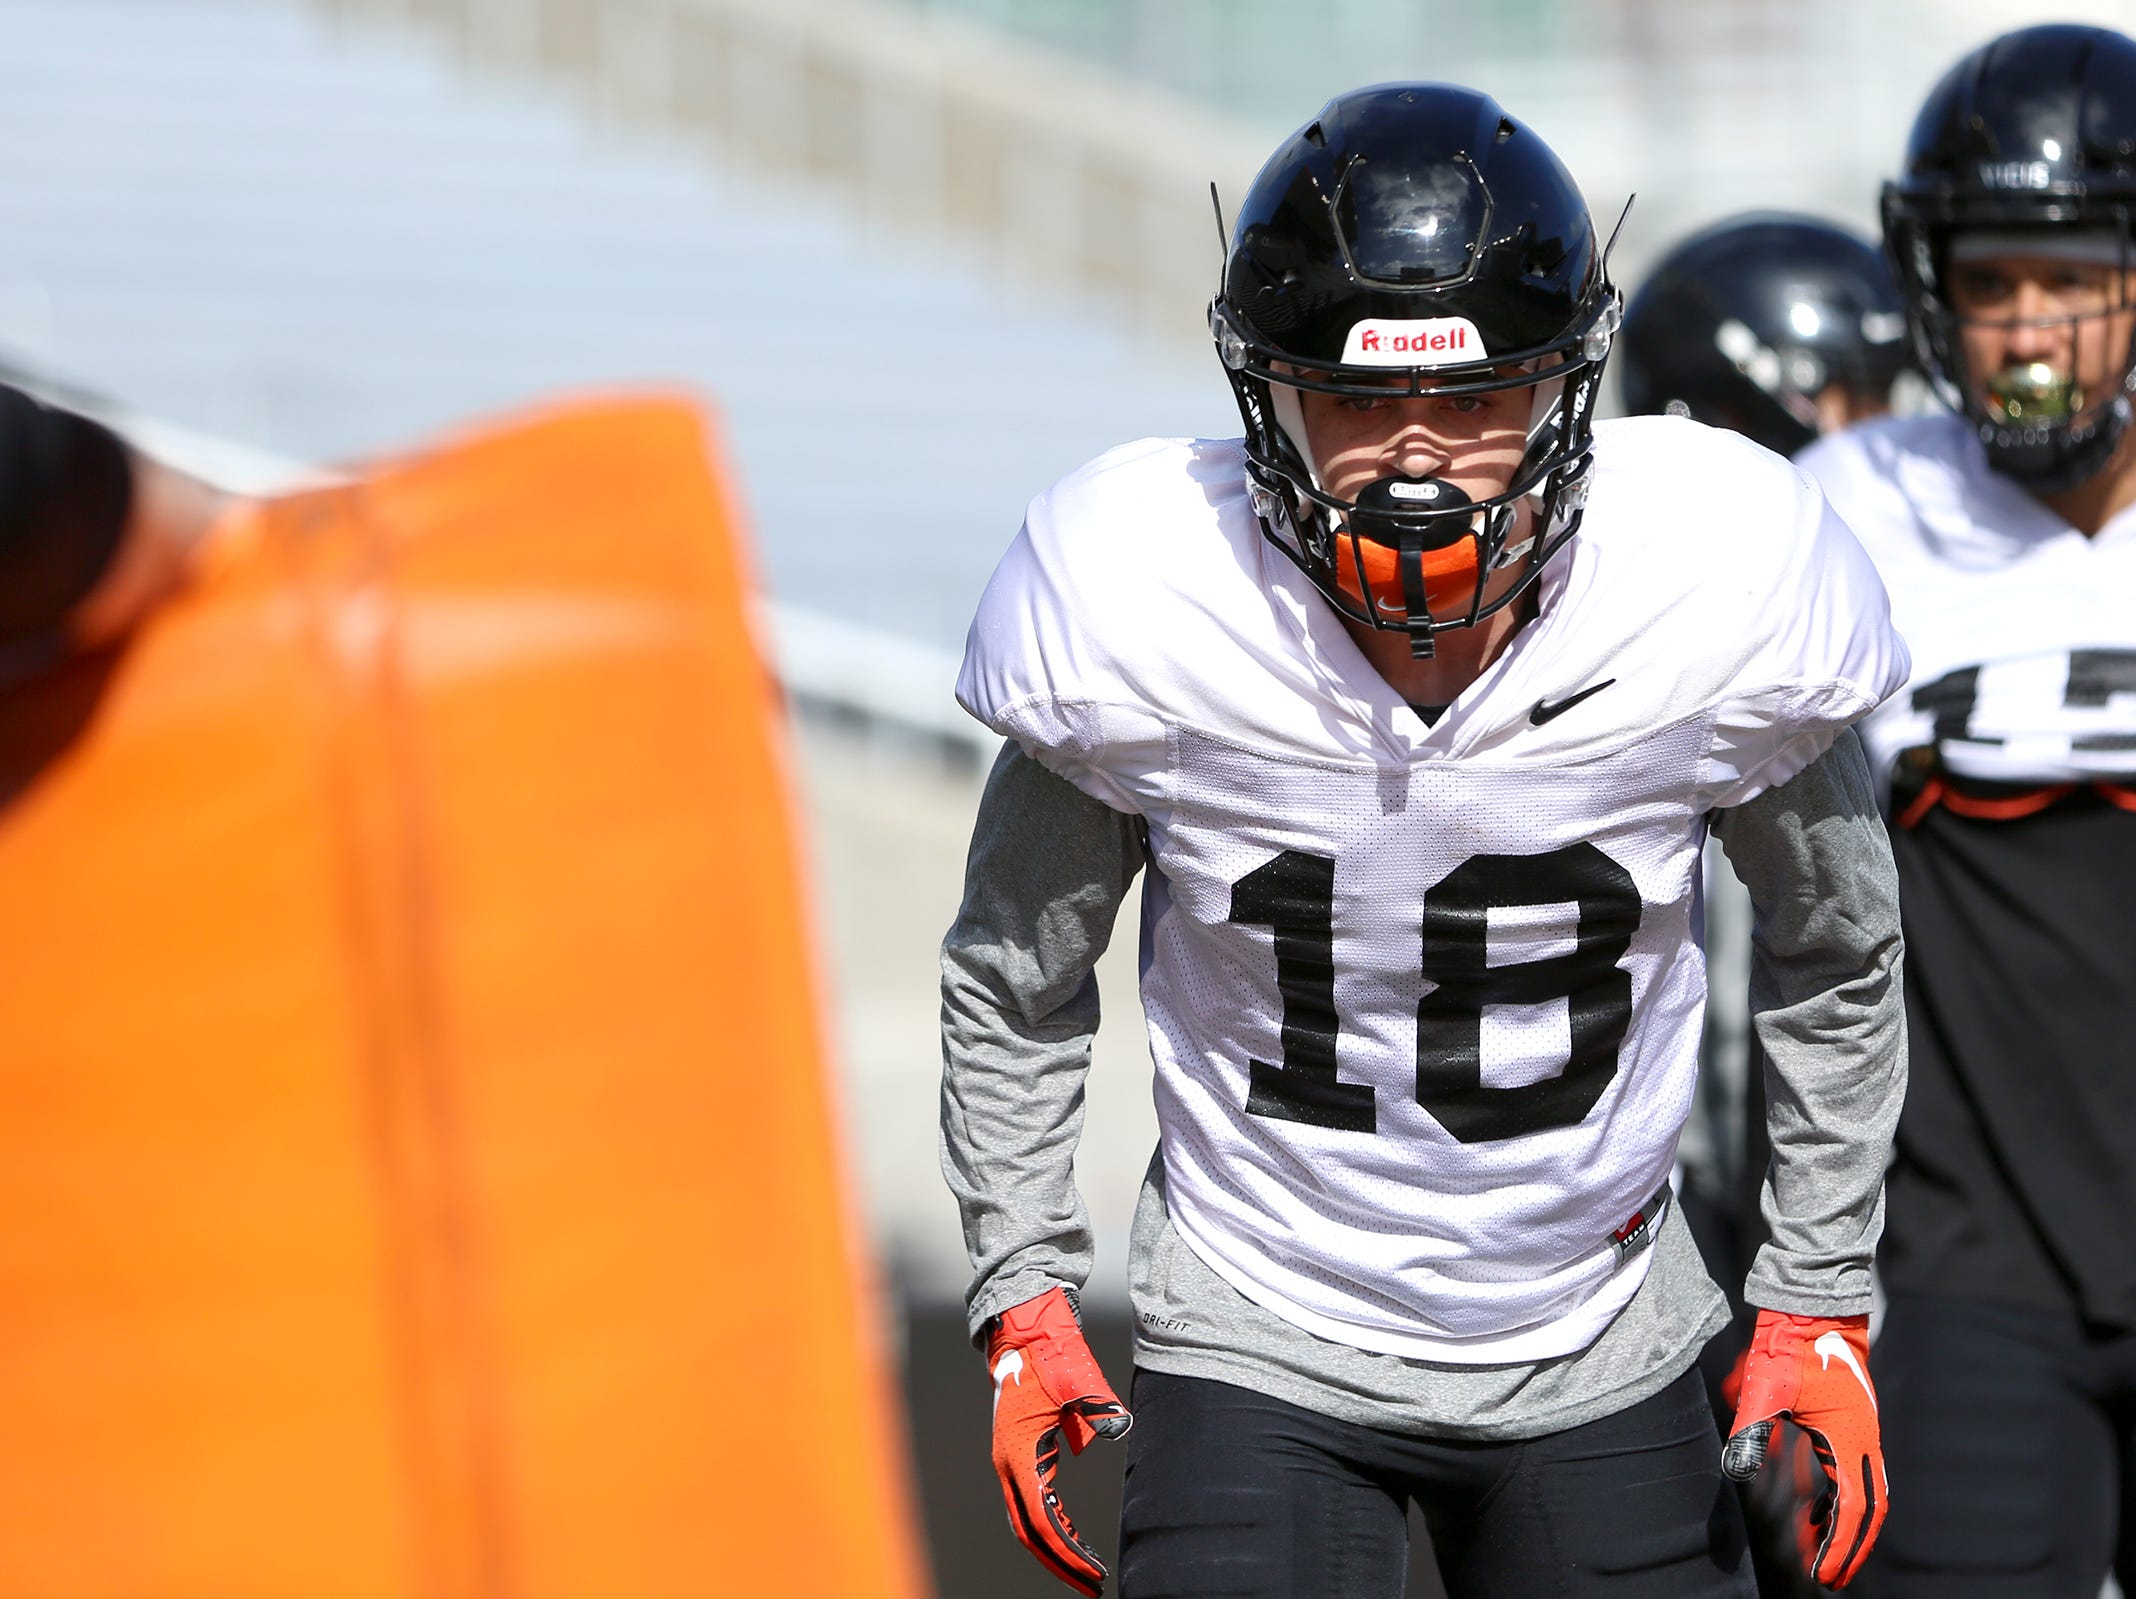 Oregon State University wide receiver Anthony Gould (18) runs drills during practice at Oregon State University in Corvallis on April 9, 2019.